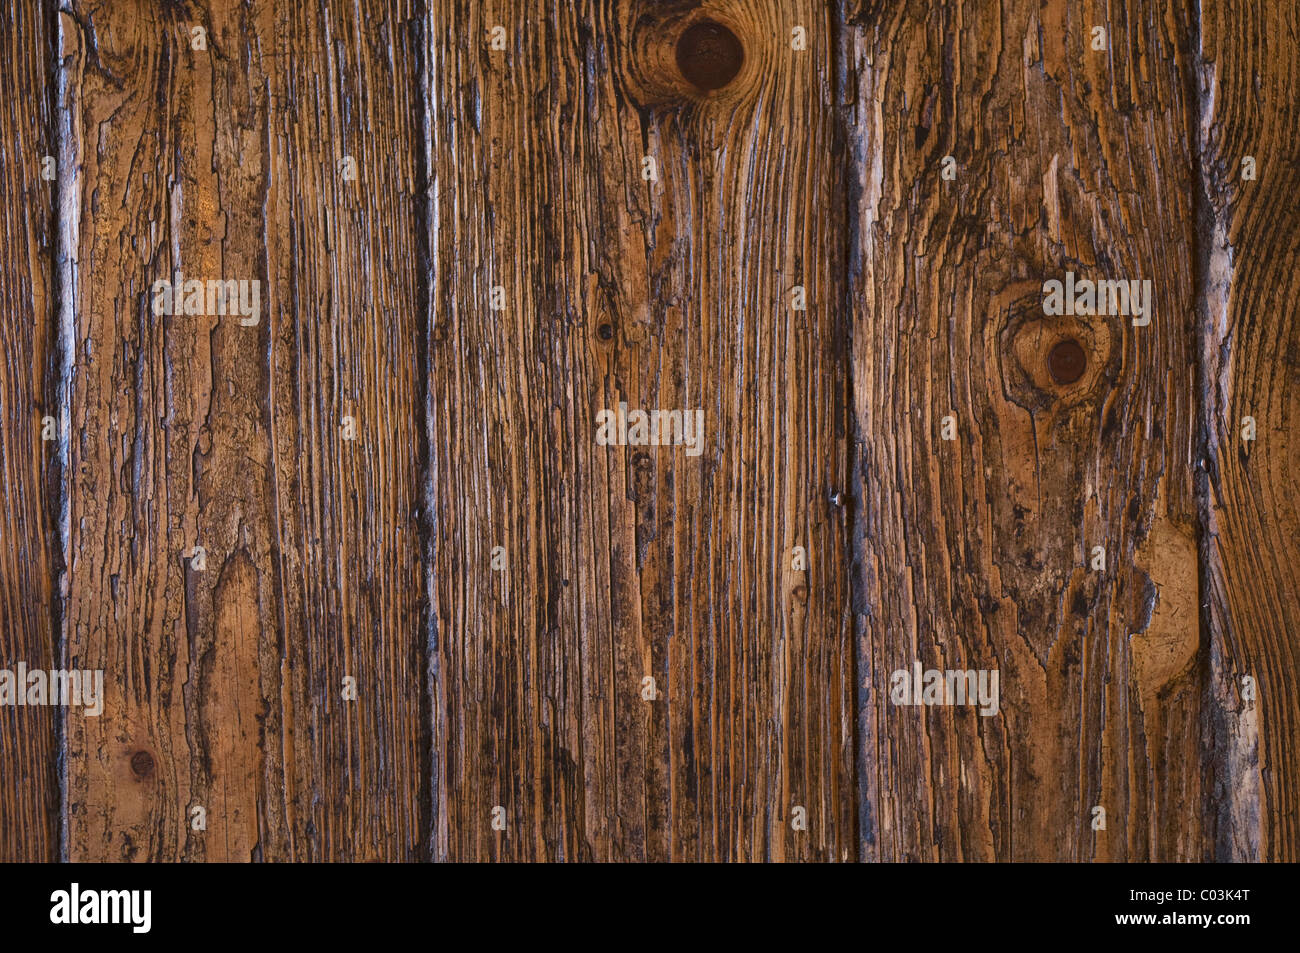 Old wooden floor, background - Stock Image